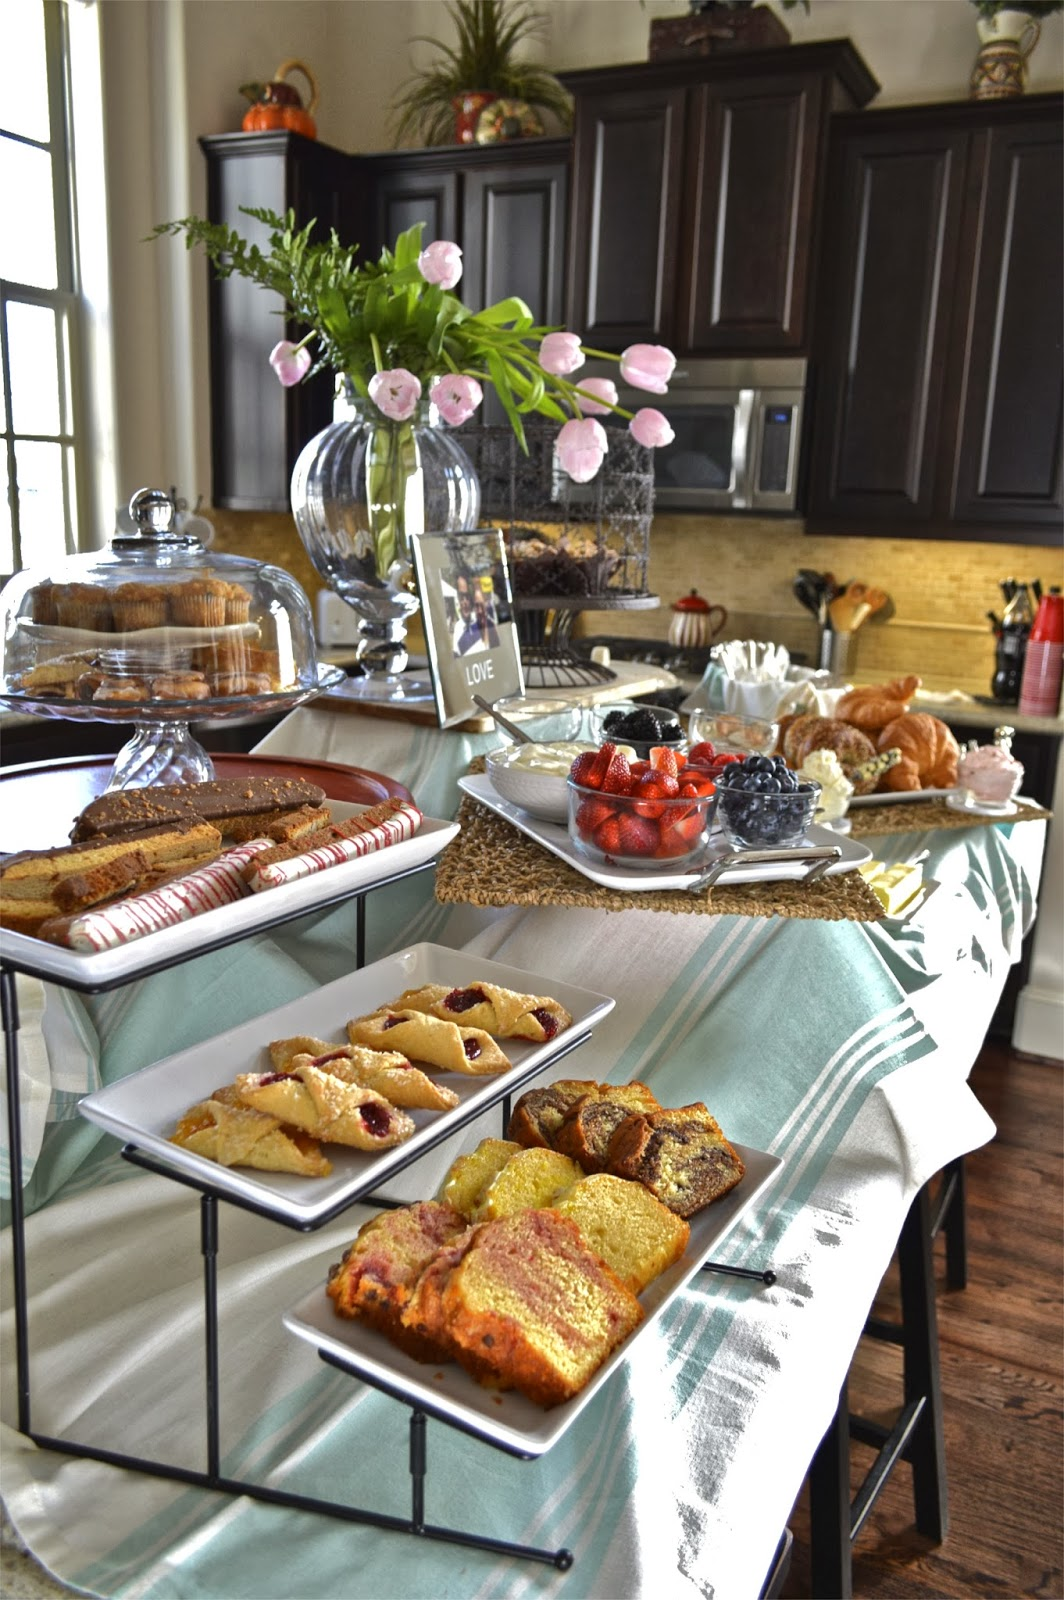 Our house is y 39 alls house saturday brunch with the girls for Breakfast table decor ideas